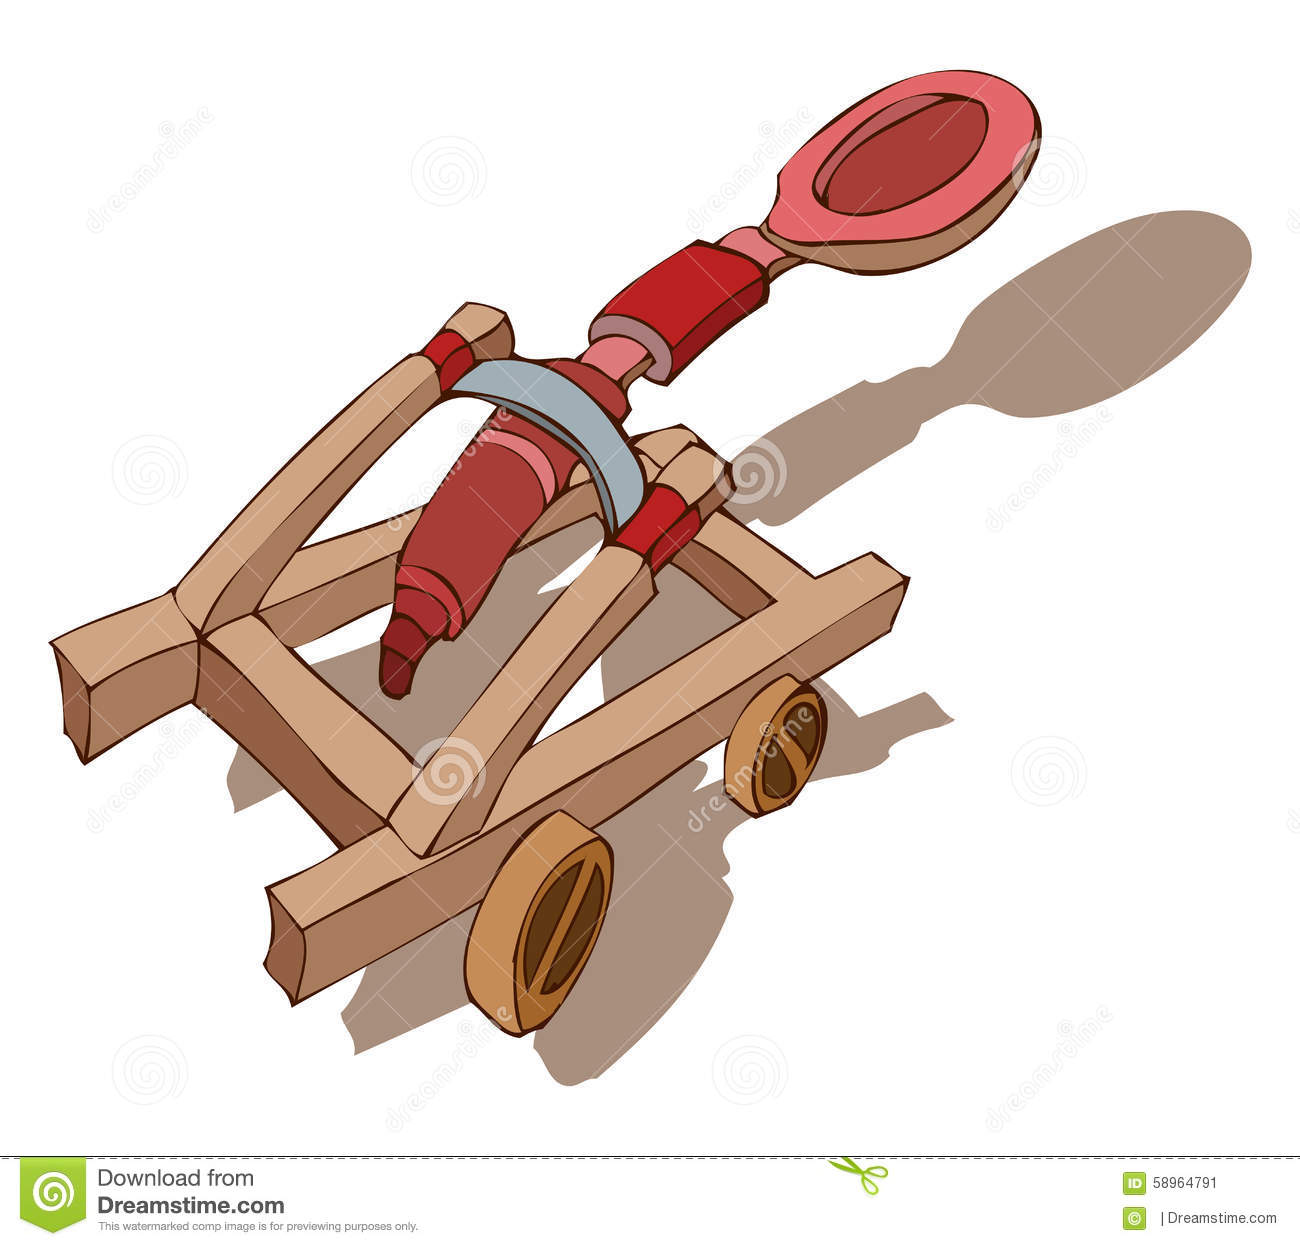 Catapult Vector Illustration. Stock Vector - Image: 58964791